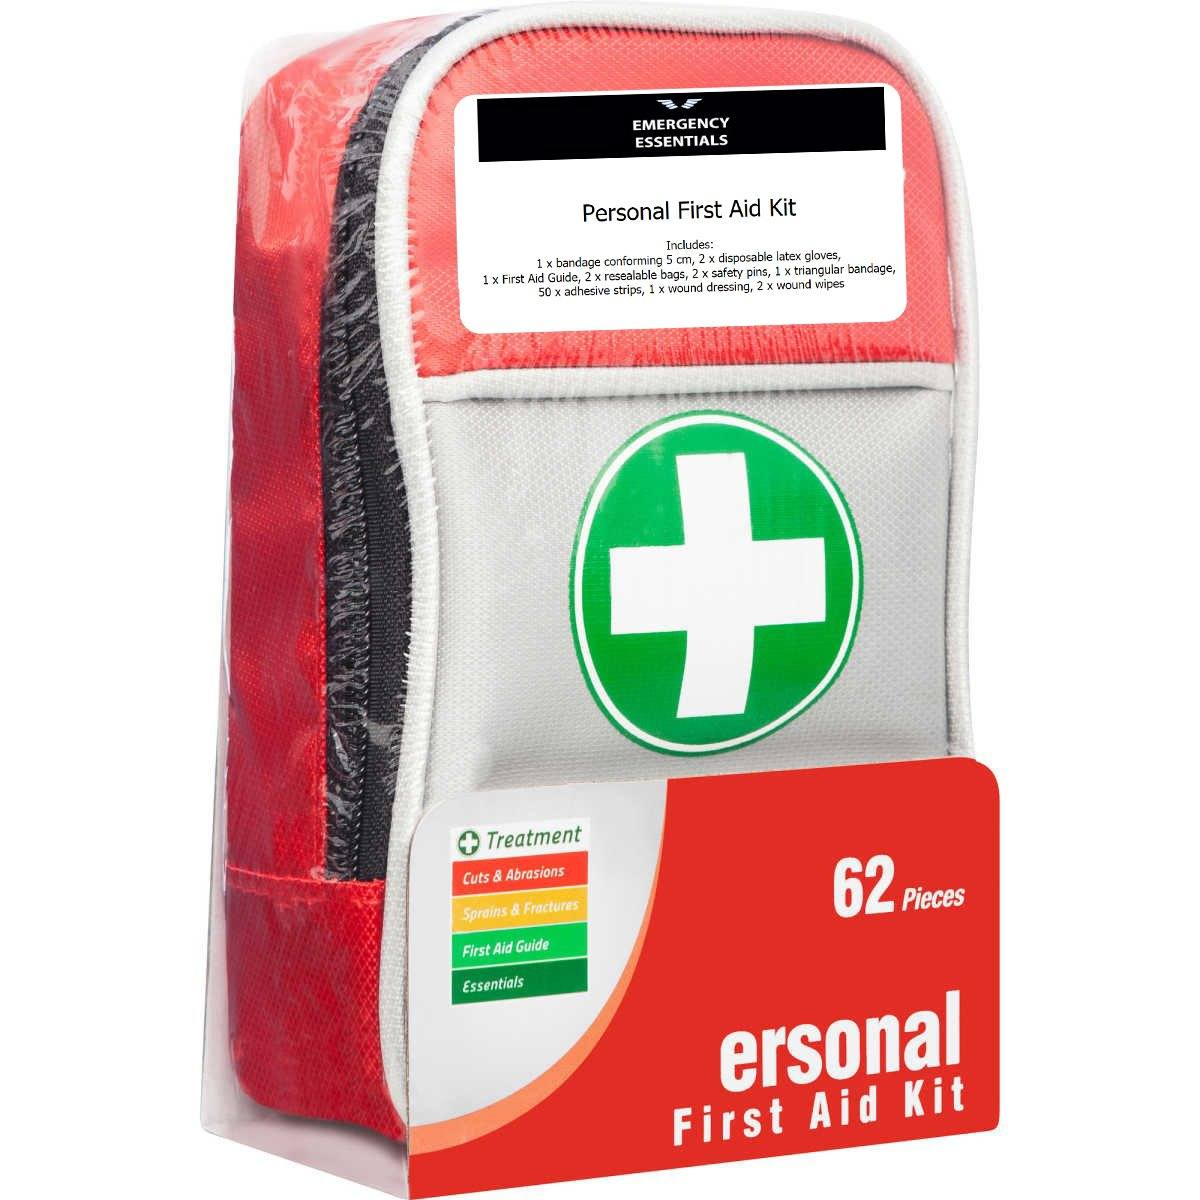 Emergency Essentials Pick - Trafalgar Personal First Aid Kit